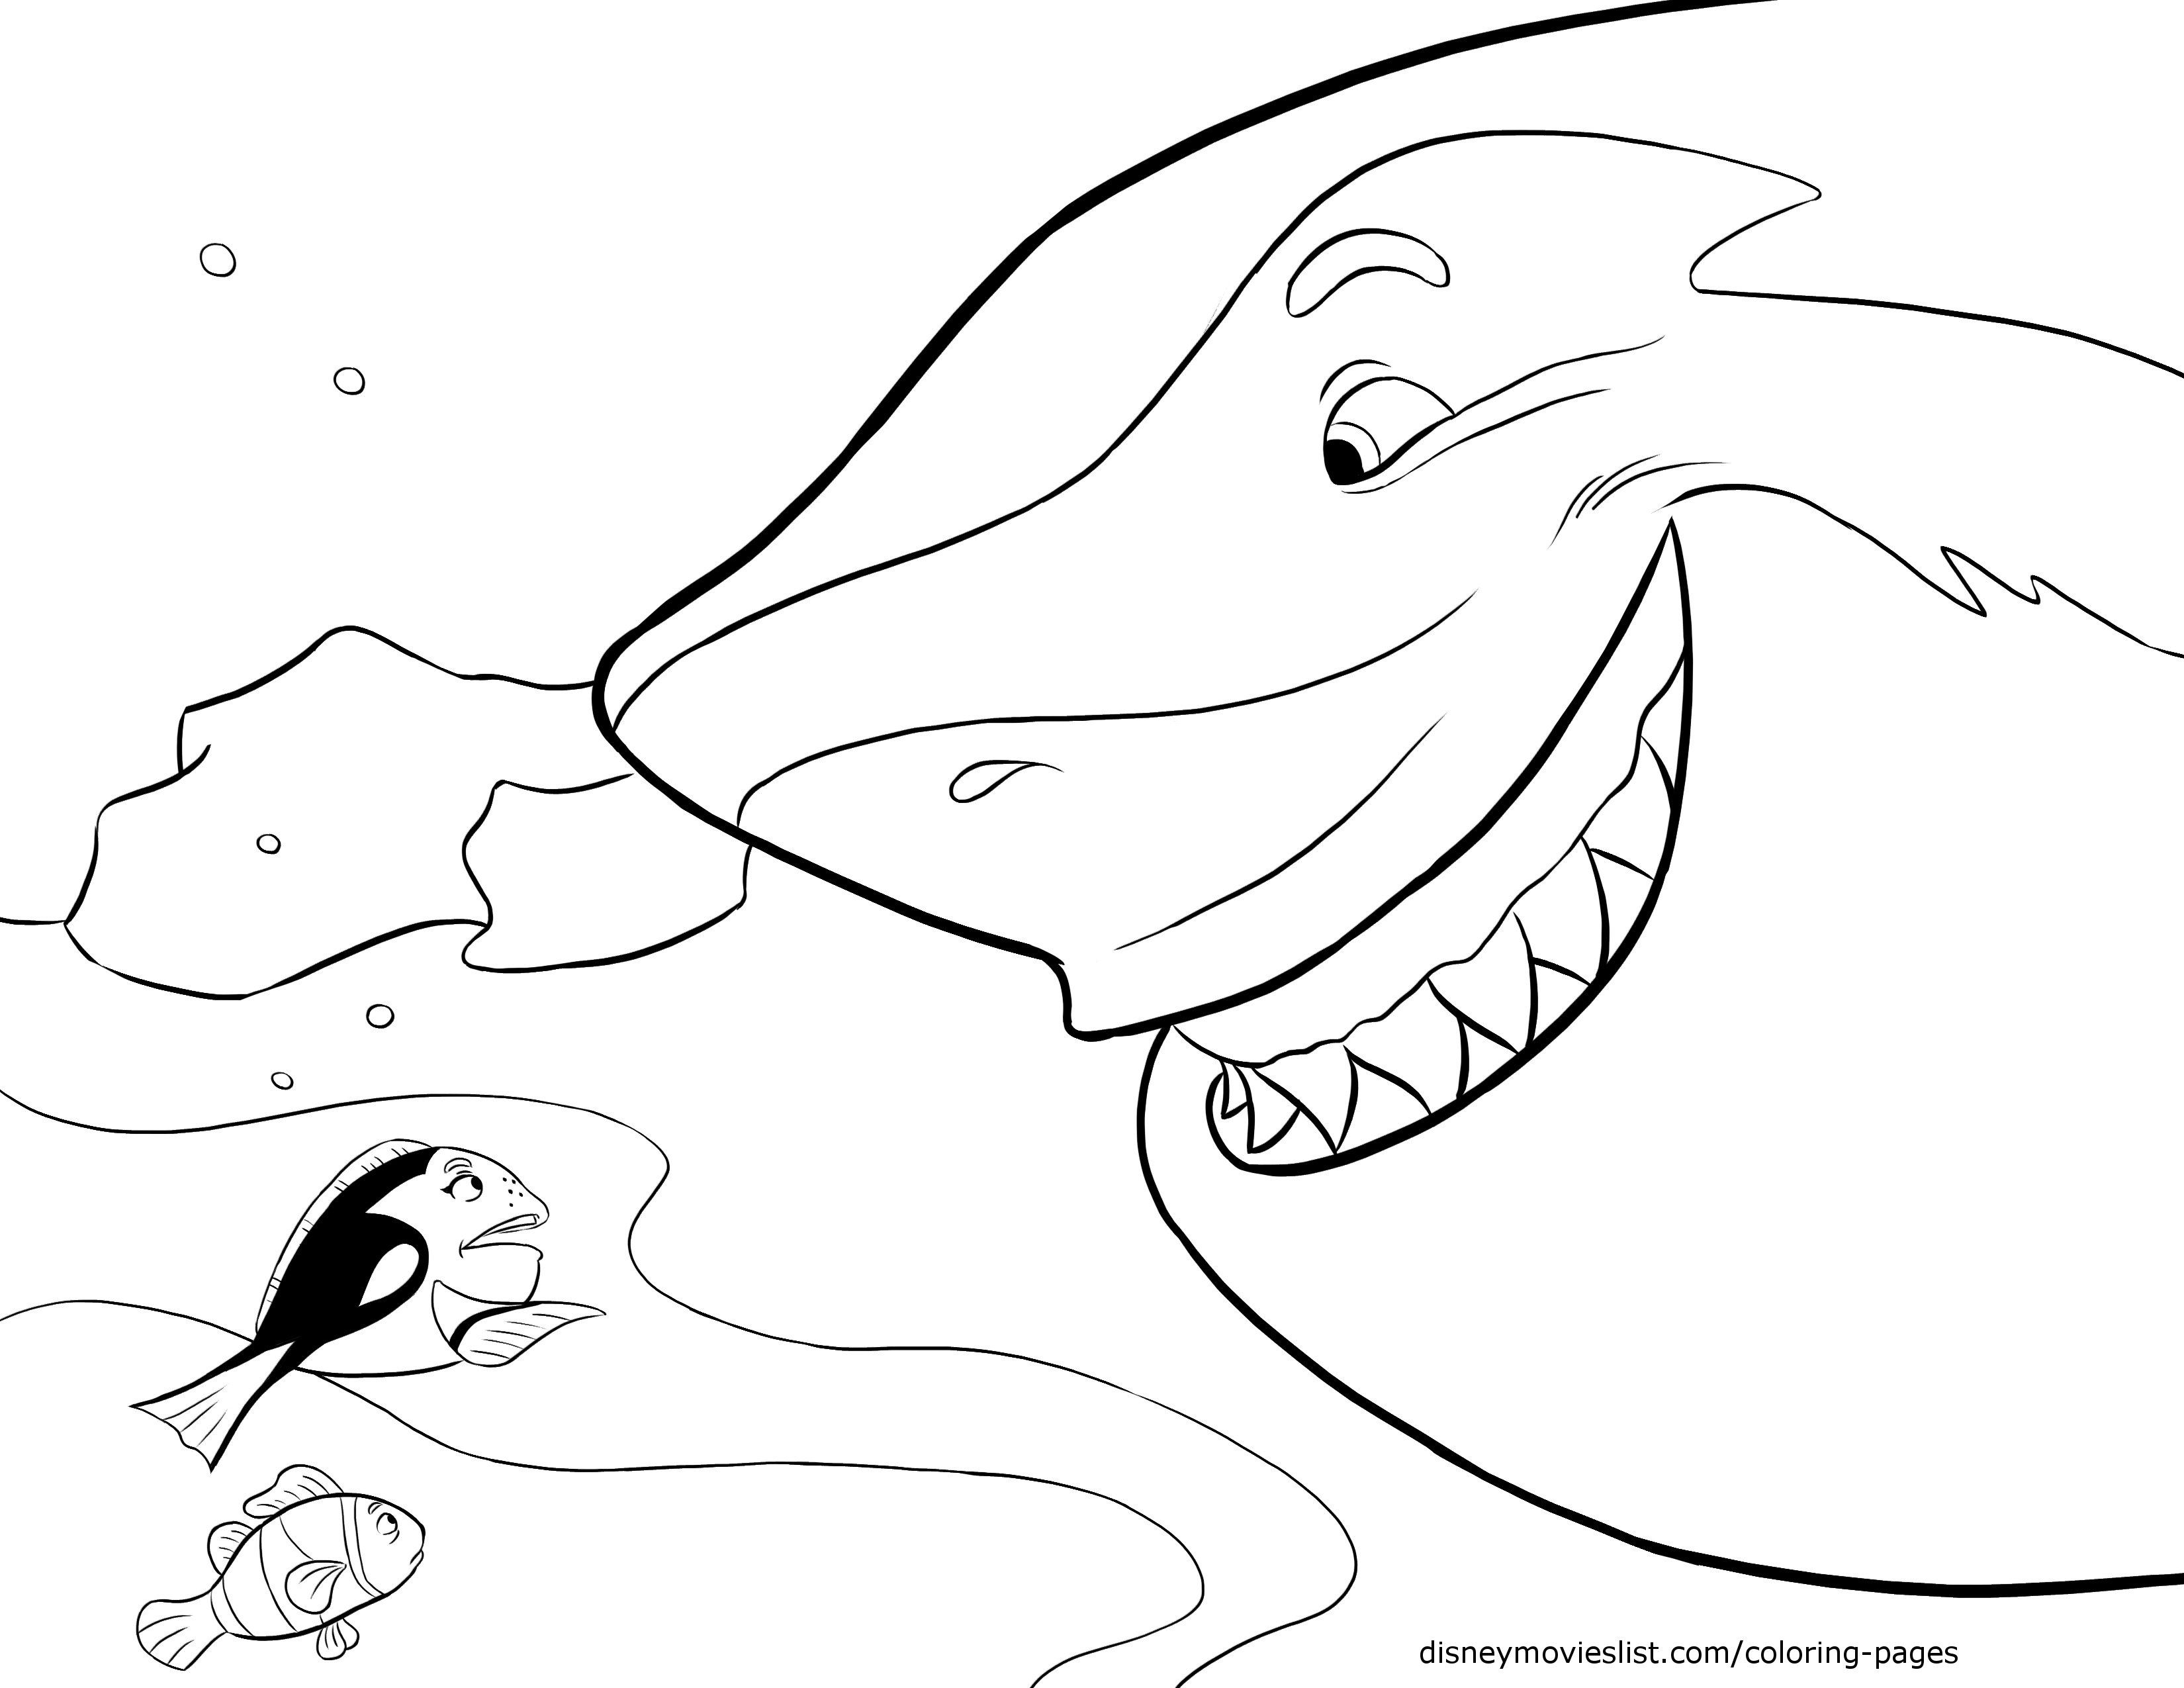 3300x2550 Disney S Finding Dory Coloring Pages Sheet Free Disney Printable